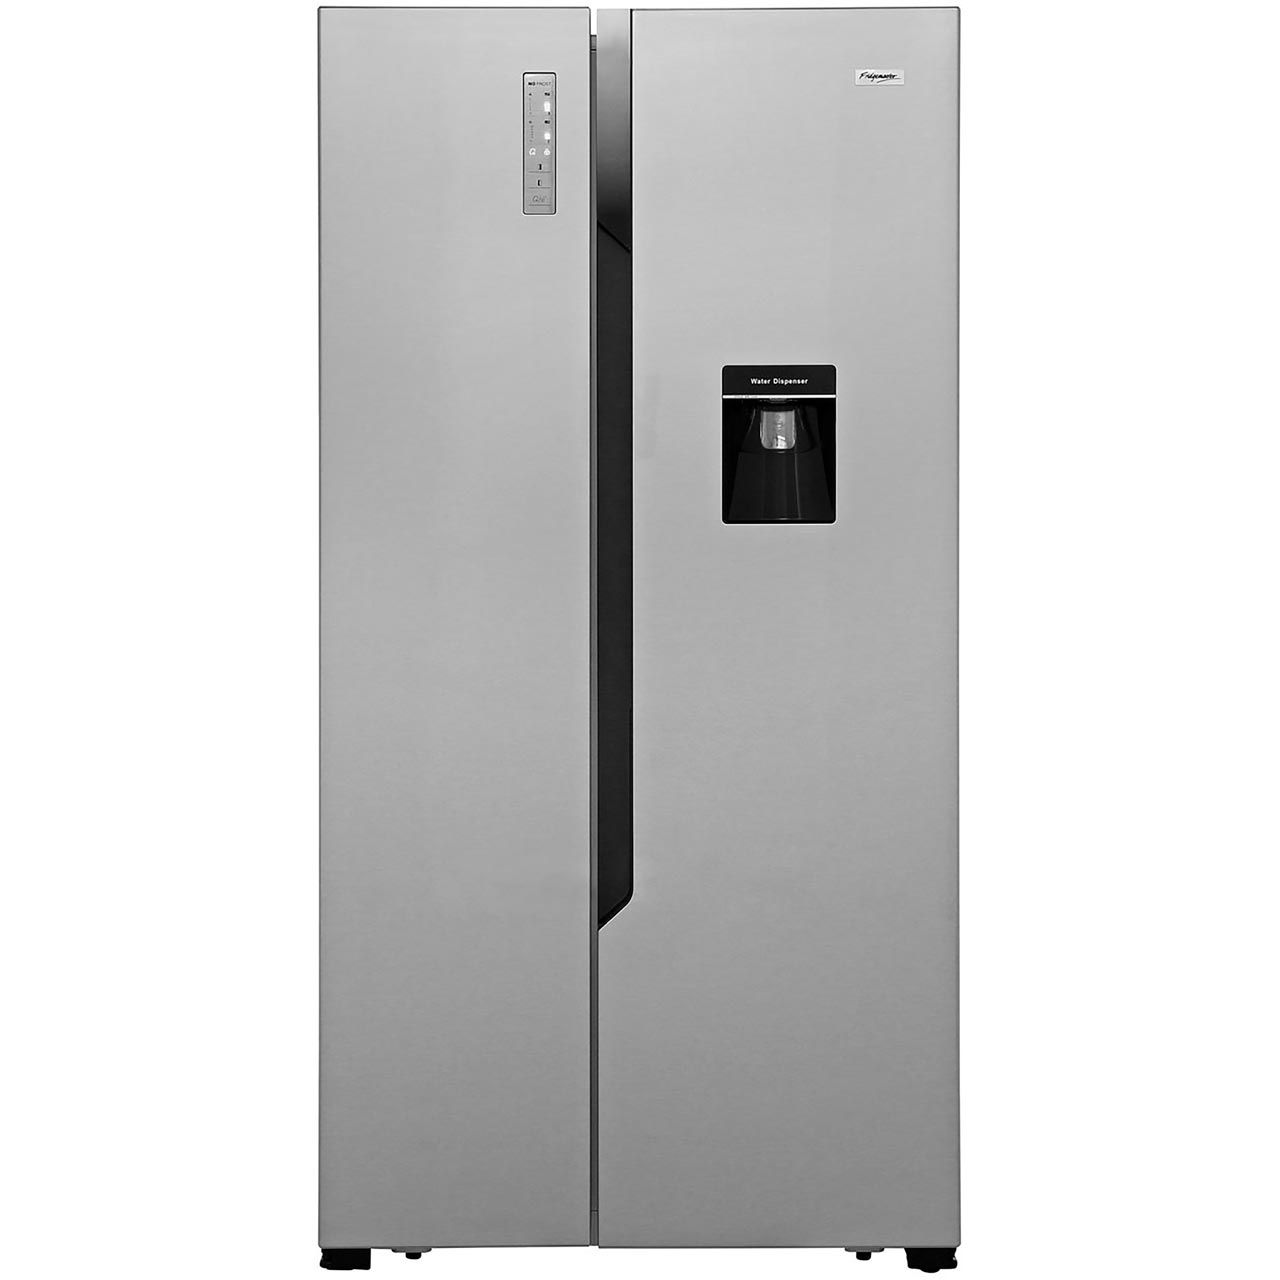 ms91515dff si   fridgemaster fridge freezer   ao com 64cm depth ms91515dff si   fridgemaster fridge freezer   ao com 64cm depth      rh   pinterest dk